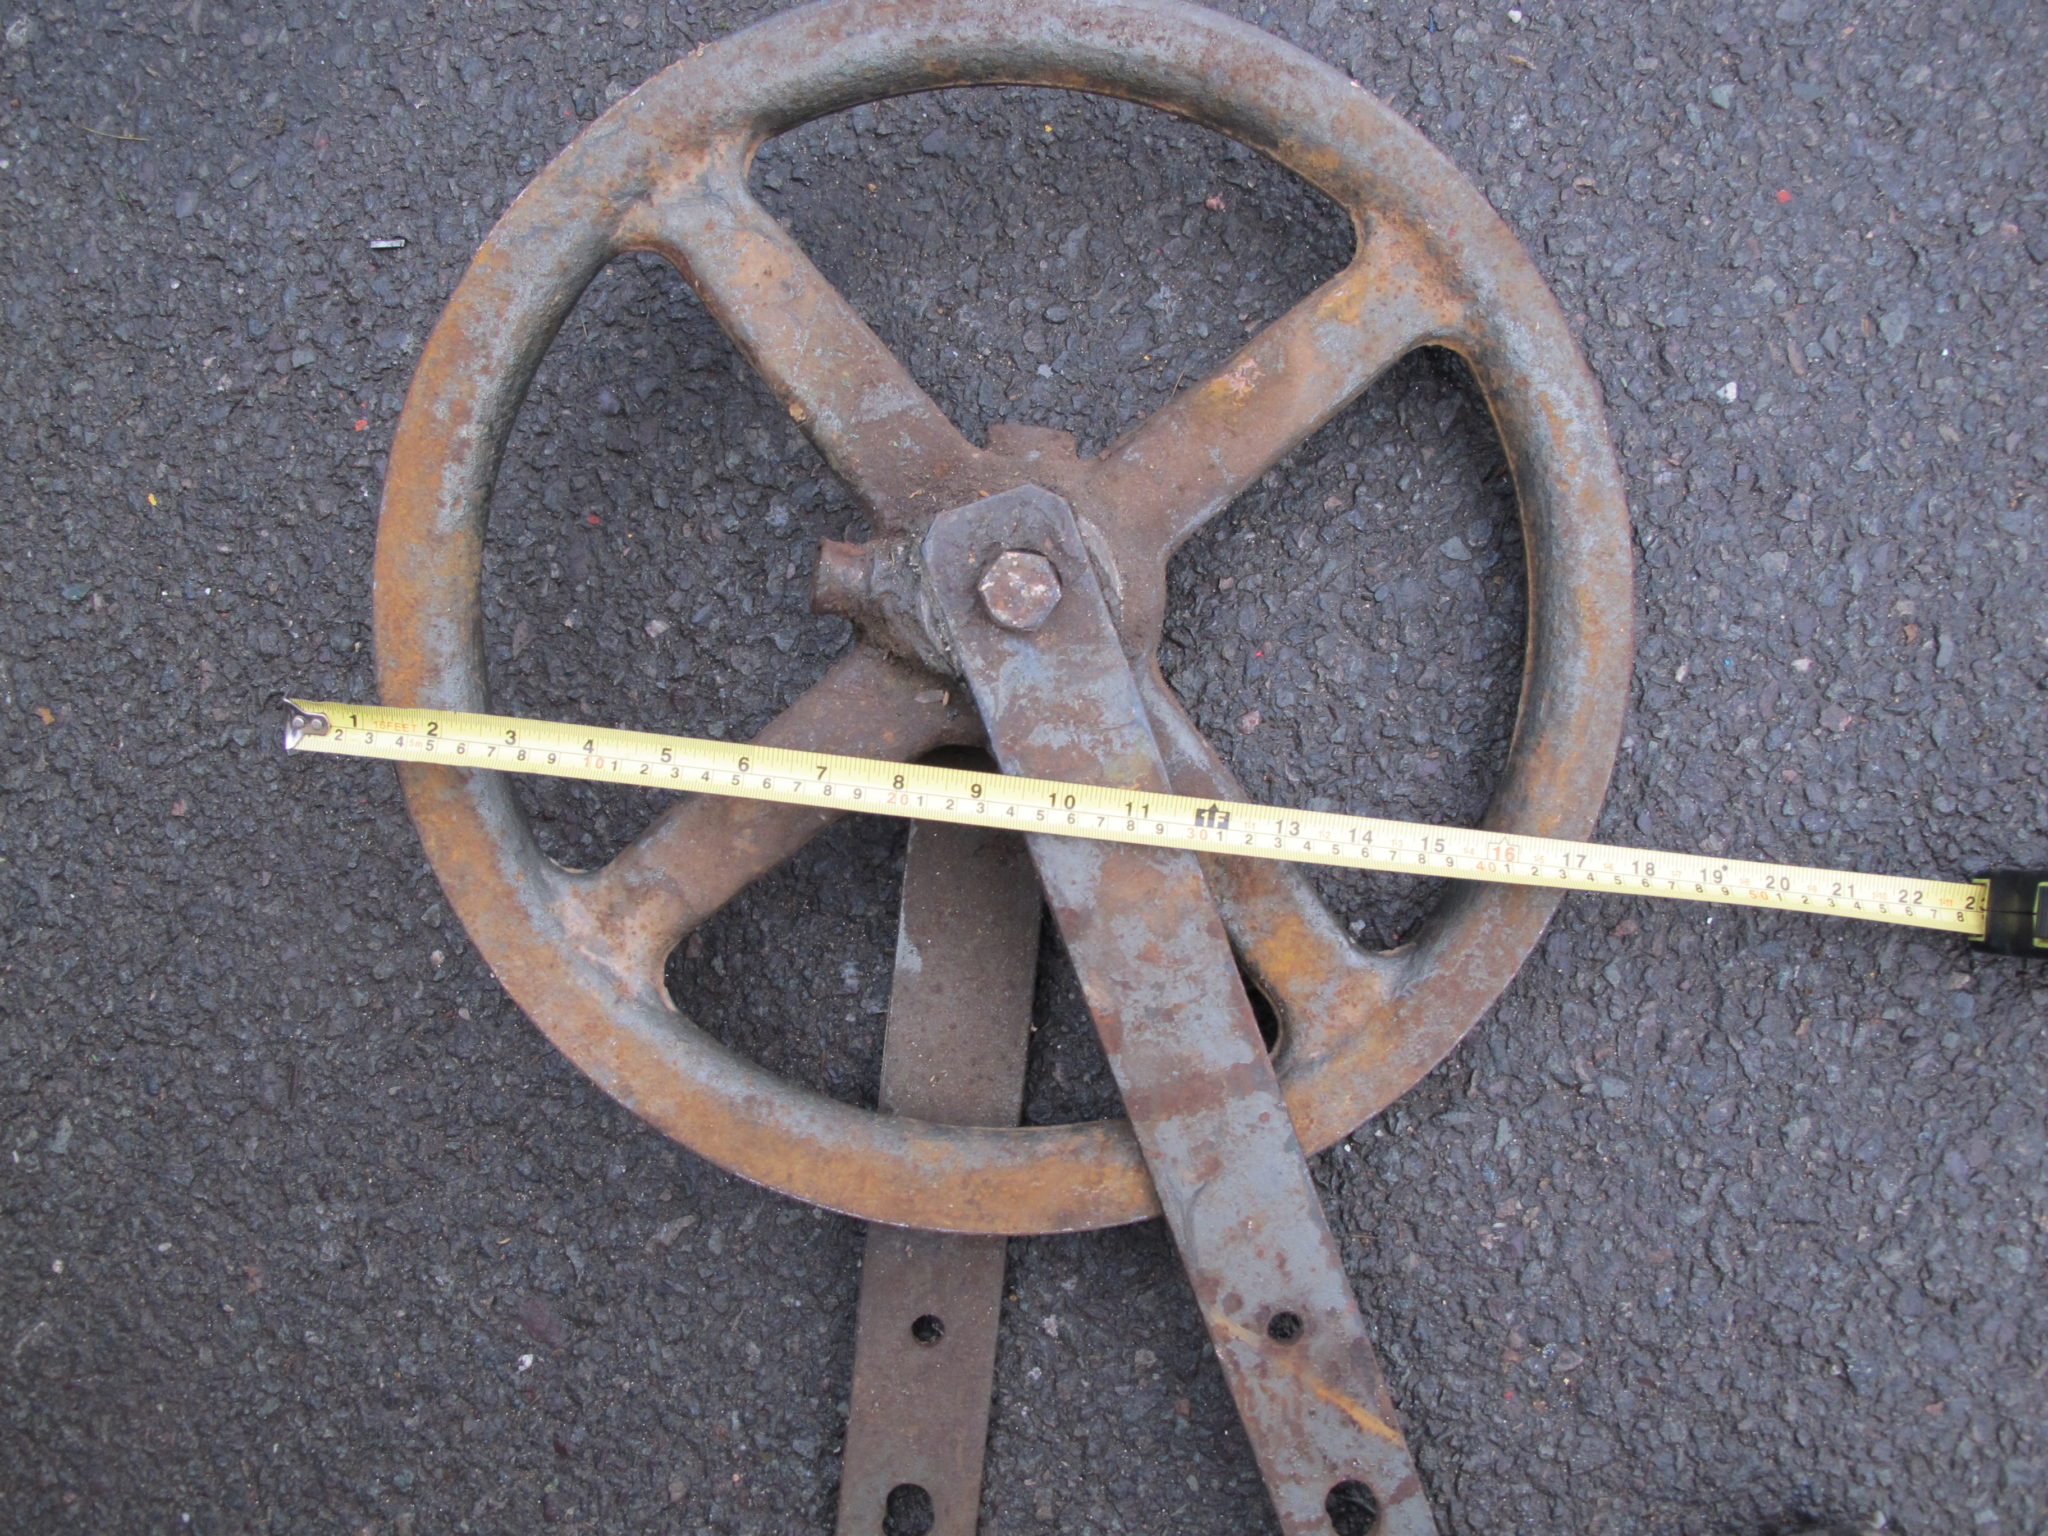 17Inch Rope Pulley - 17inch Rope Pulley